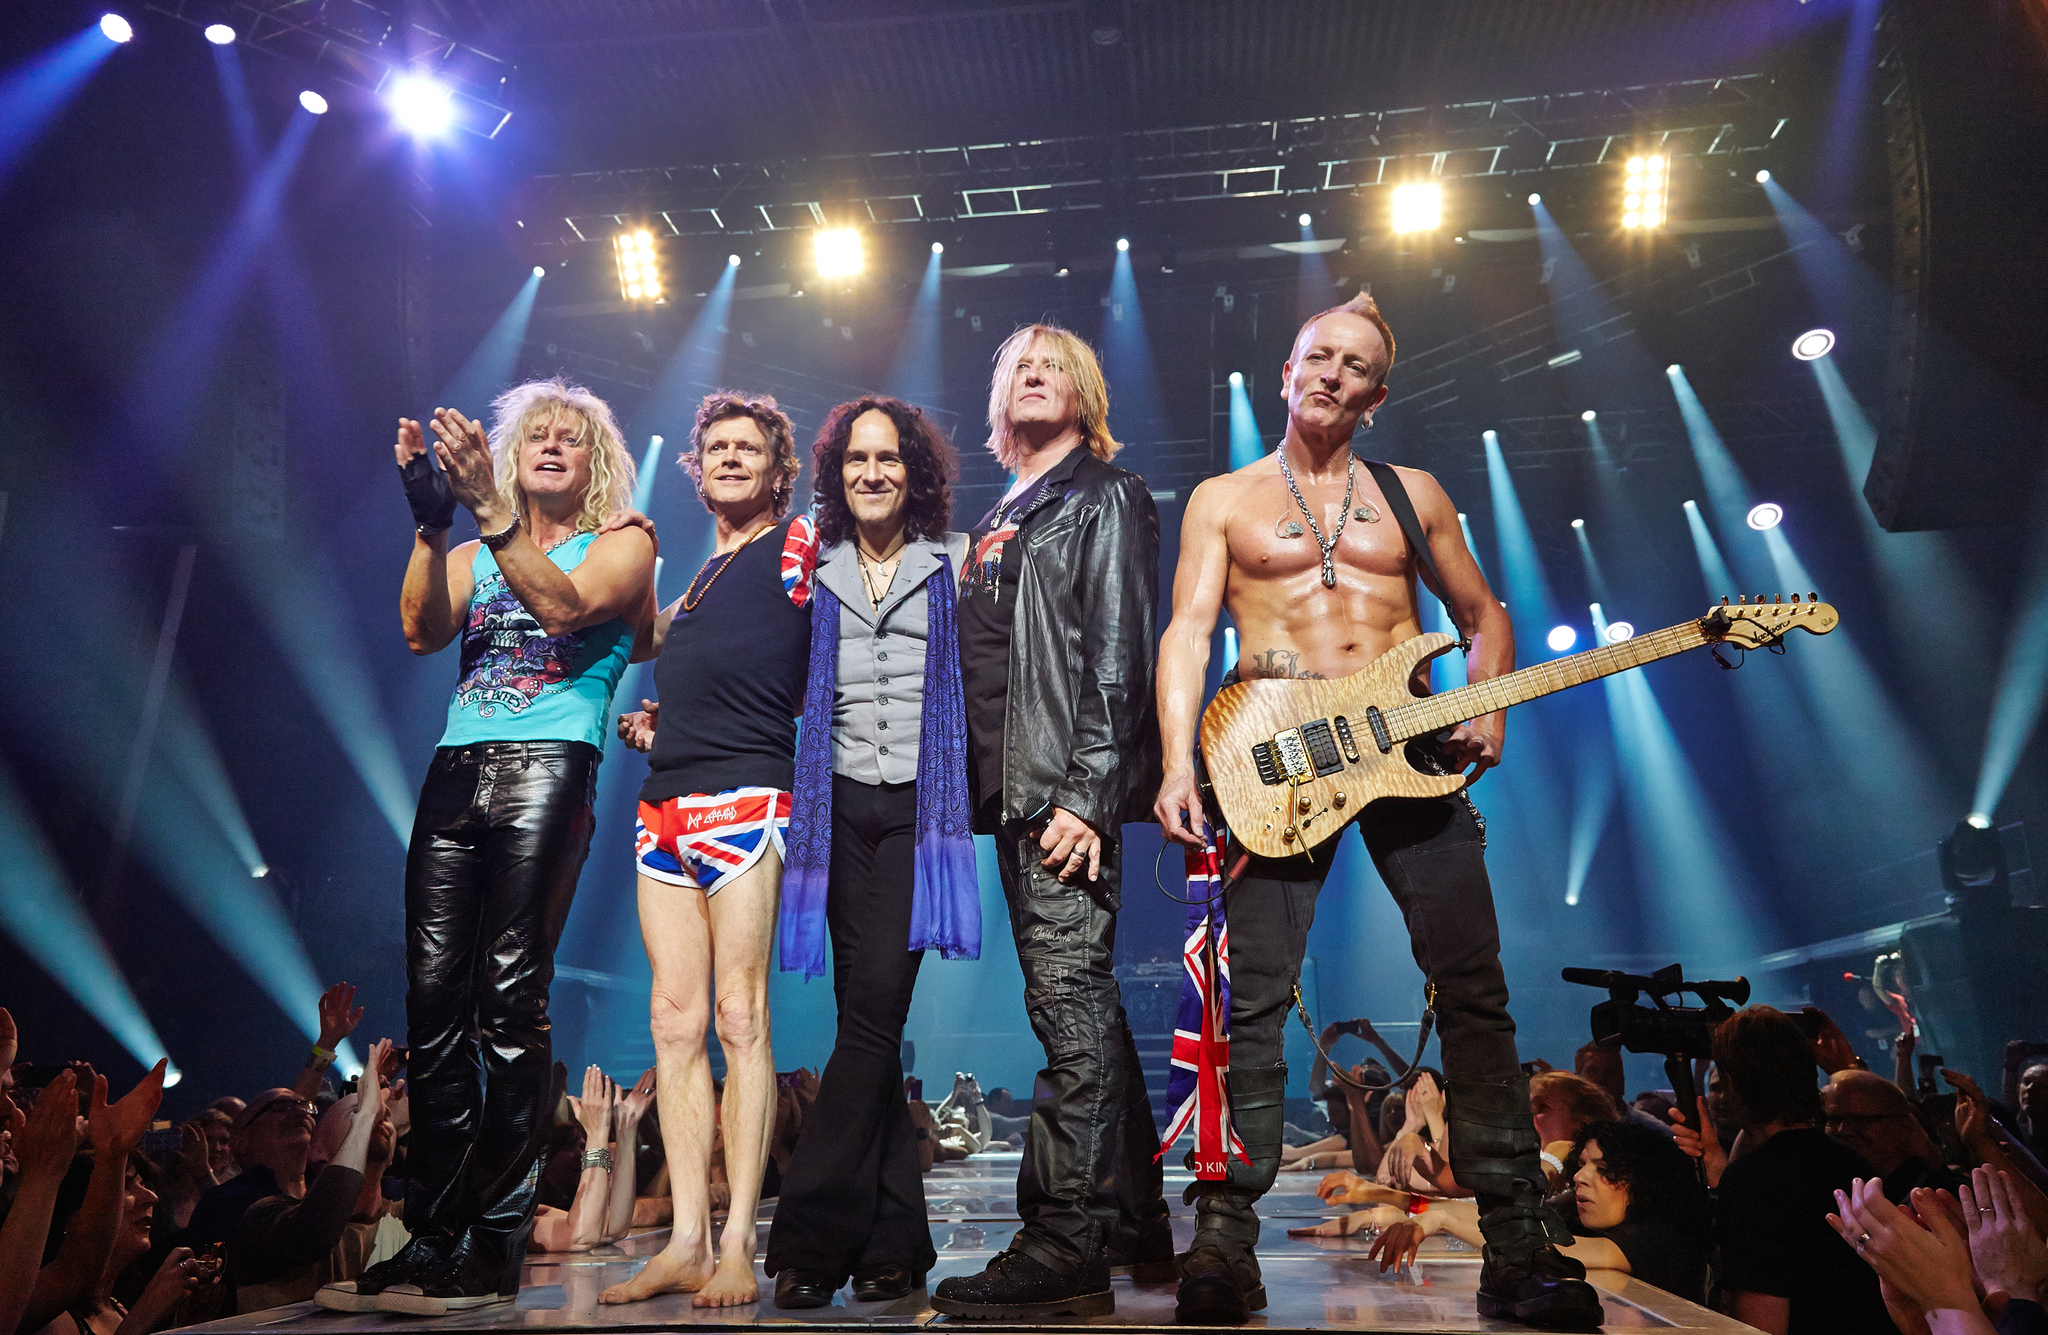 Still of Joe Elliott, Vivian Campbell, Rick Allen, Rick Savage and Phil Collen in Def Leppard Viva! Hysteria Concert (2013)